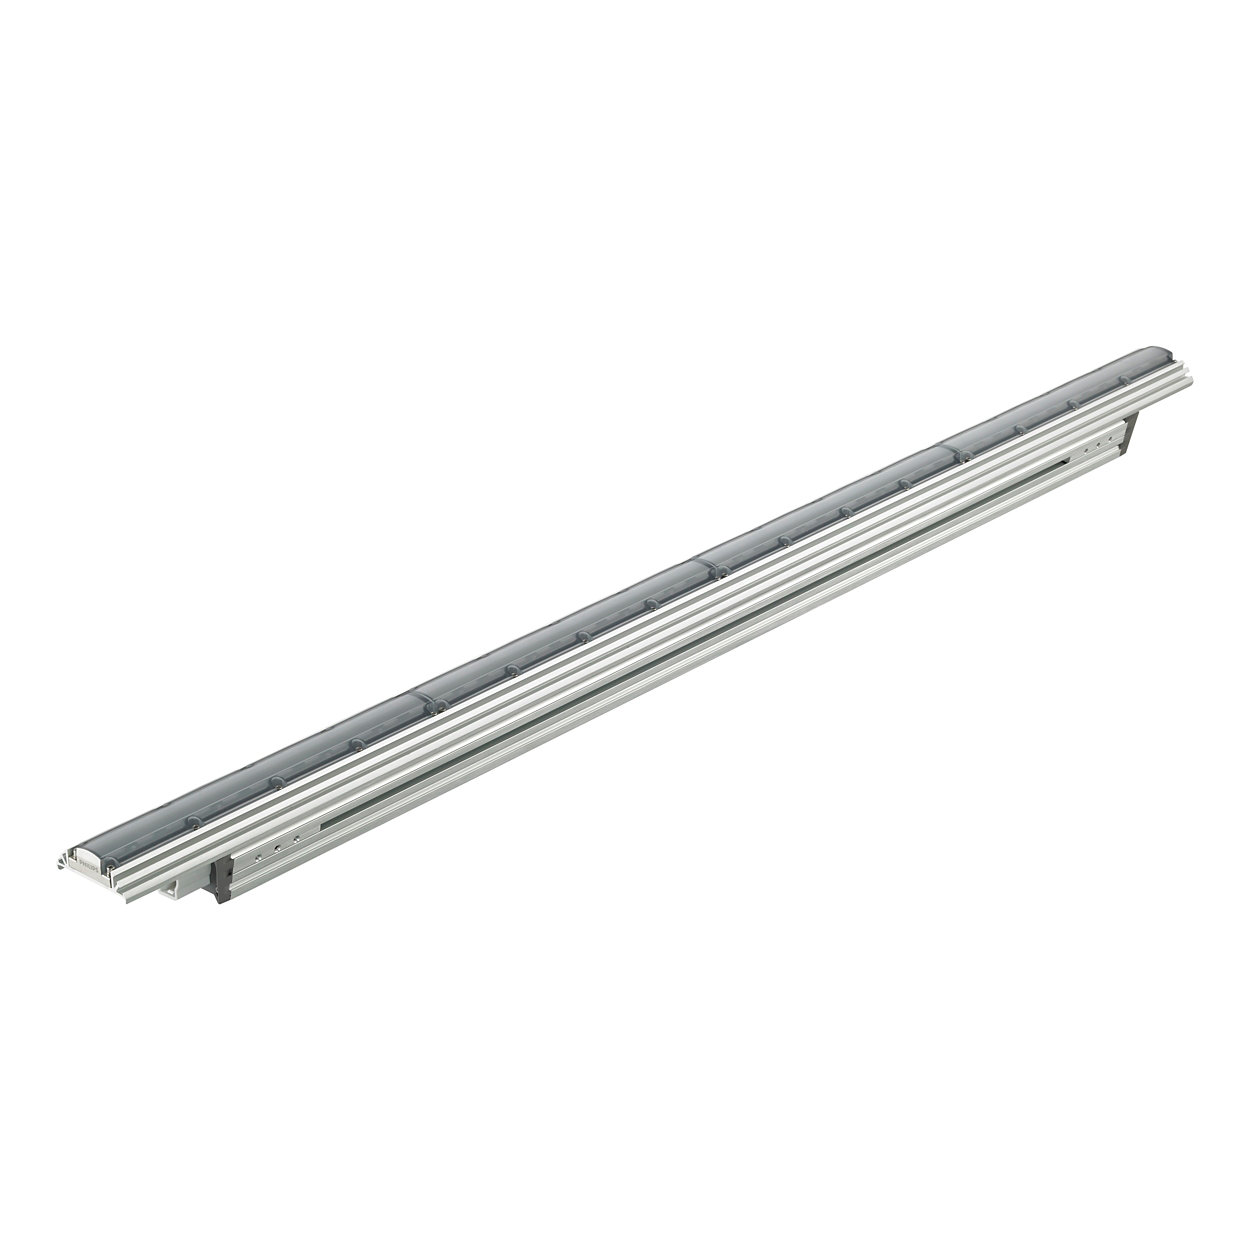 ColorGraze EC Powercore – Cost-effective linear exterior LED wall grazing luminaires with RGB light